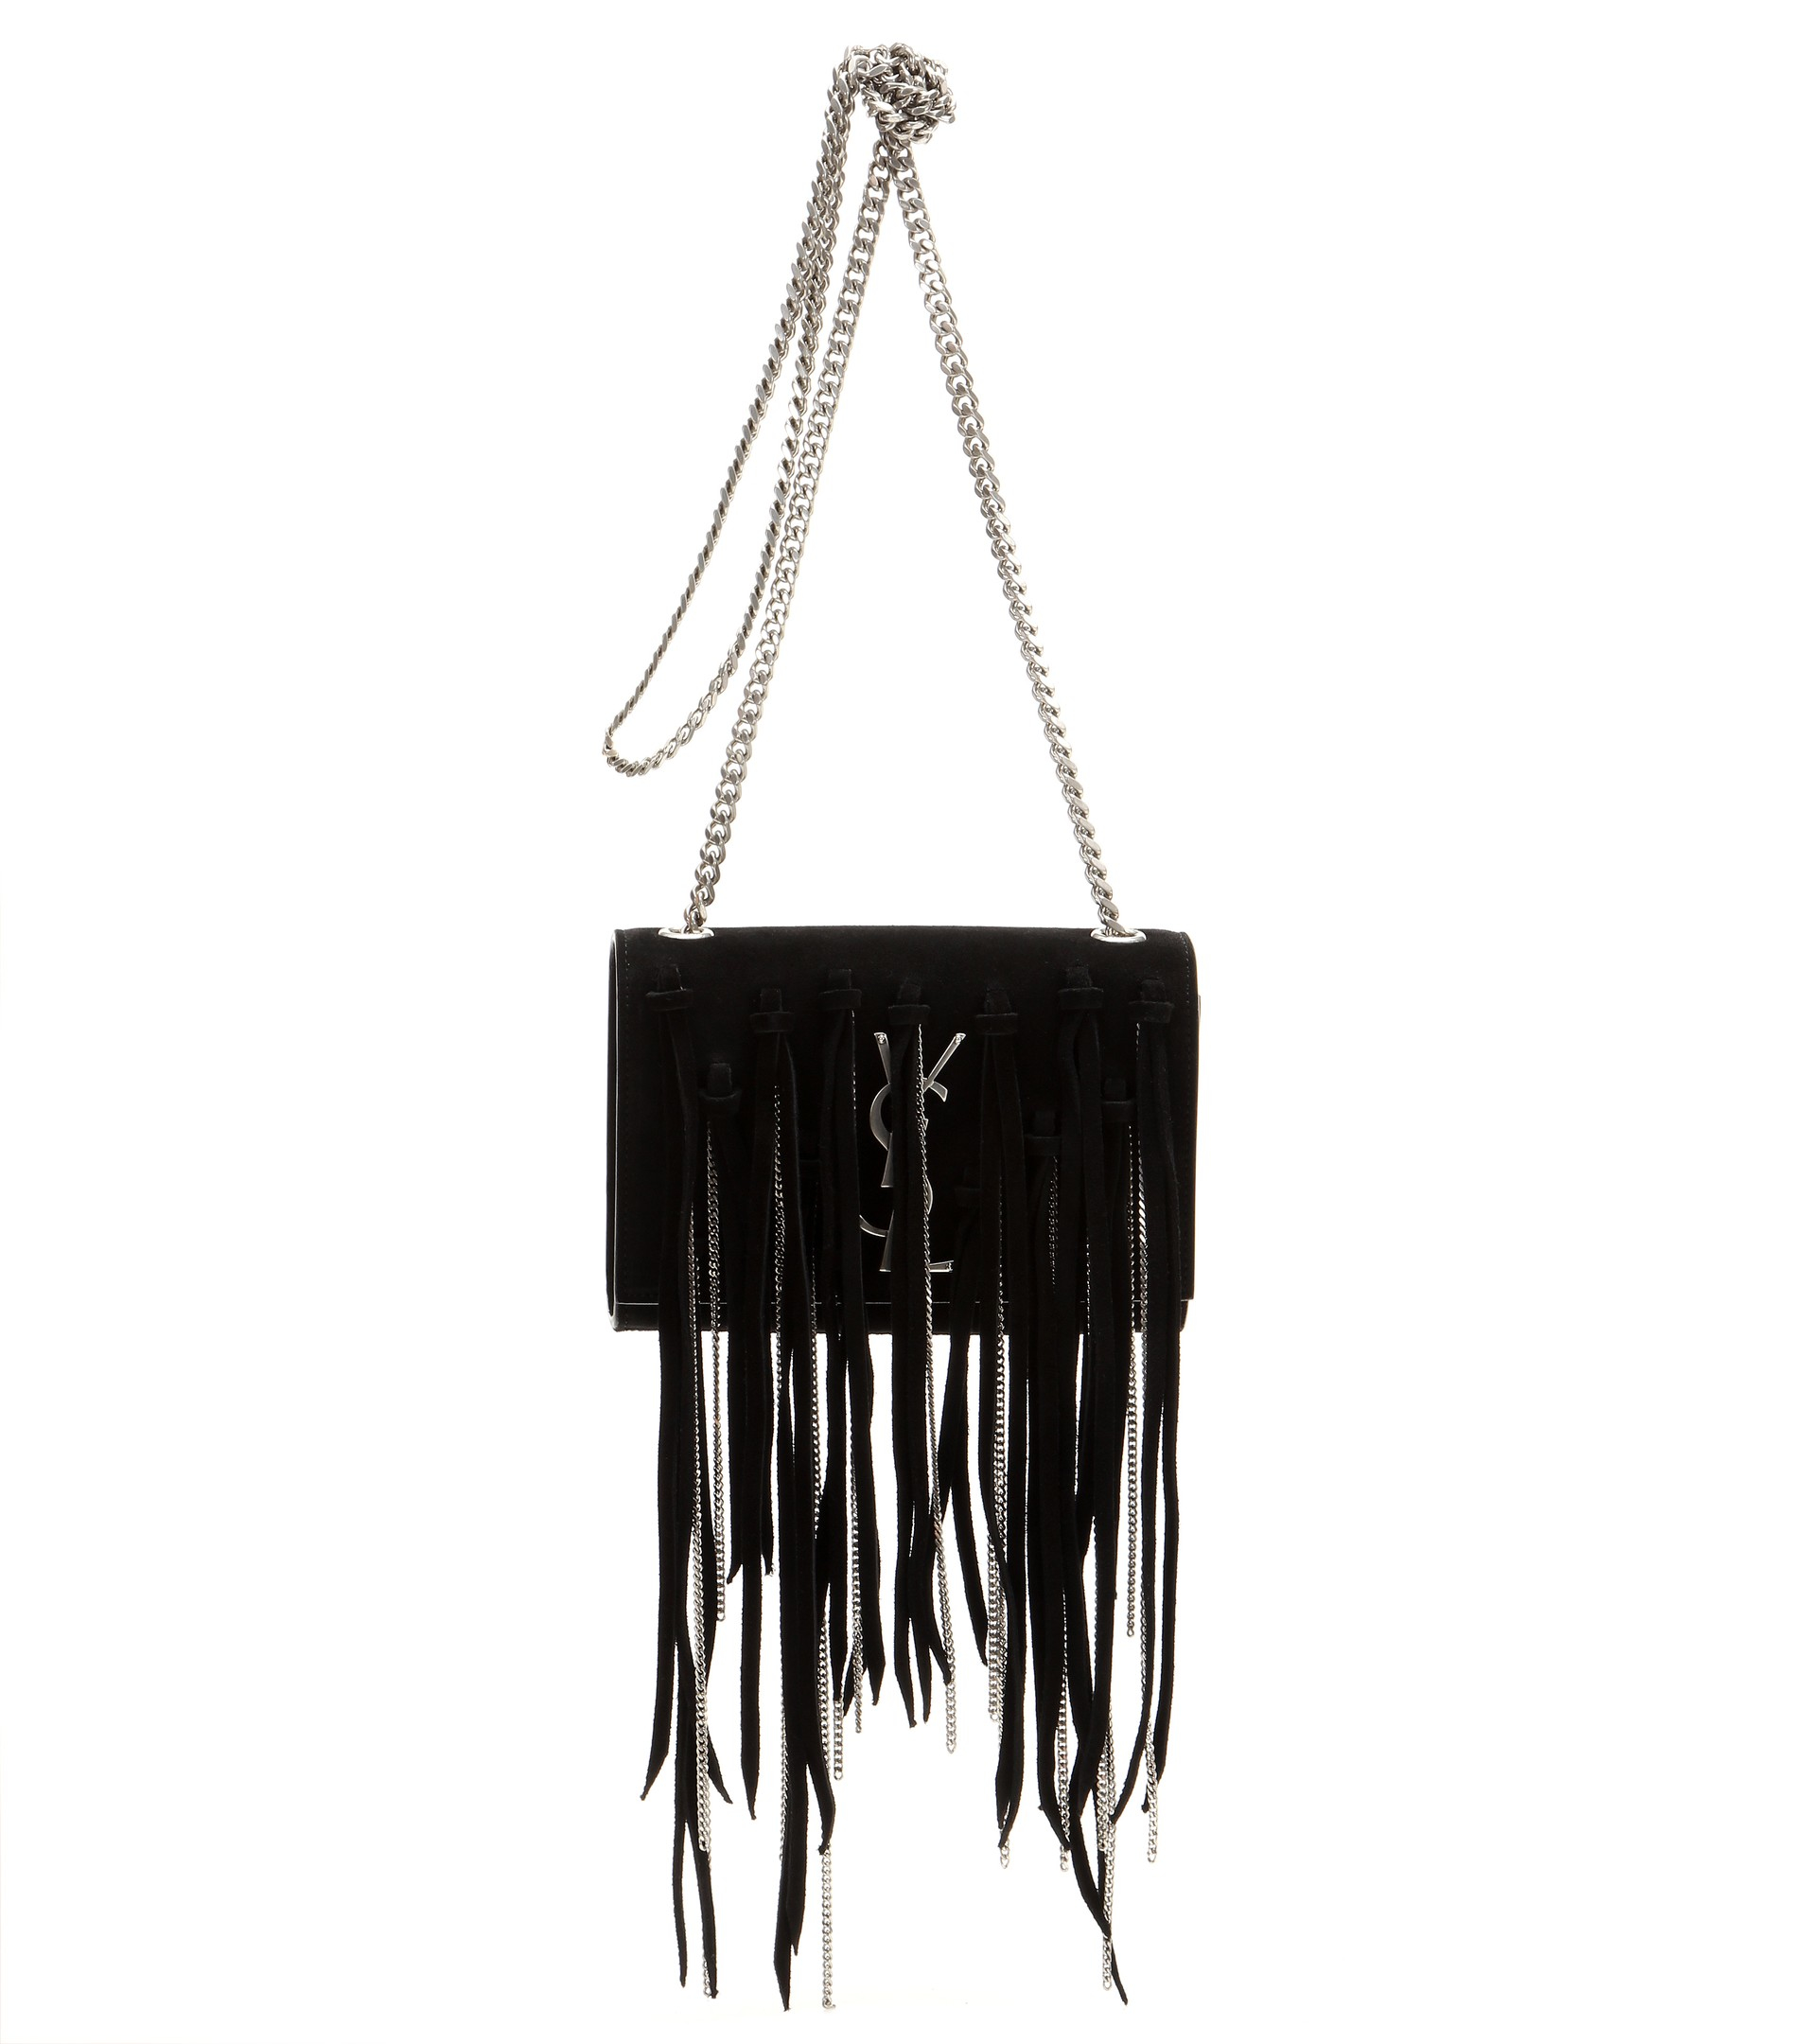 948e82d0563 yves st laurent website - small monogram saint laurent fringed crossbody bag  in black leather ...